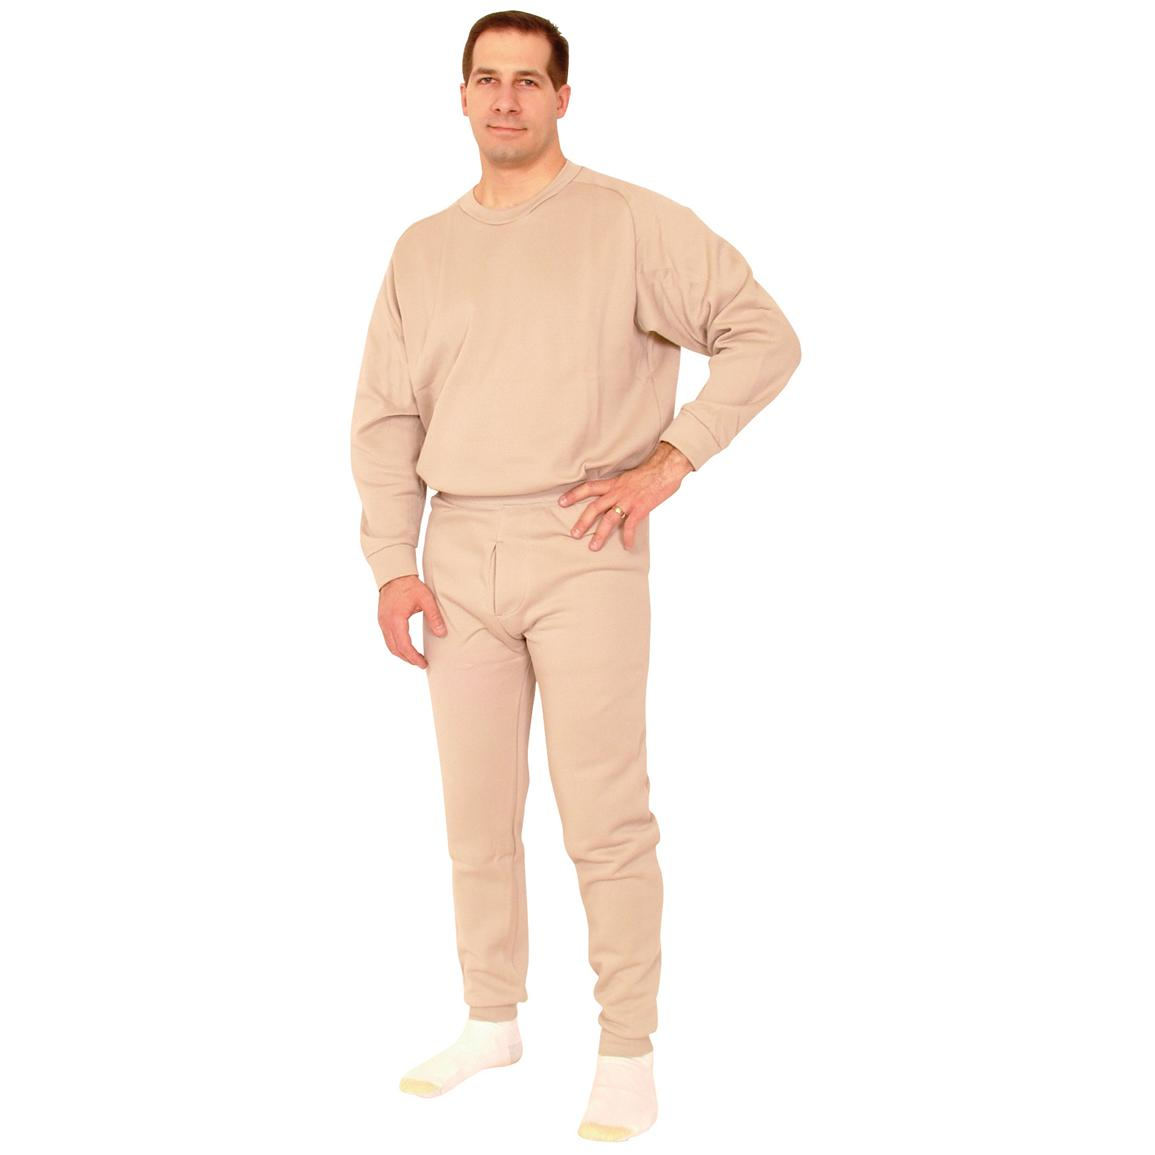 Fox Tactical™ ECWCS Polypropylene Long Underwear Top, Sand